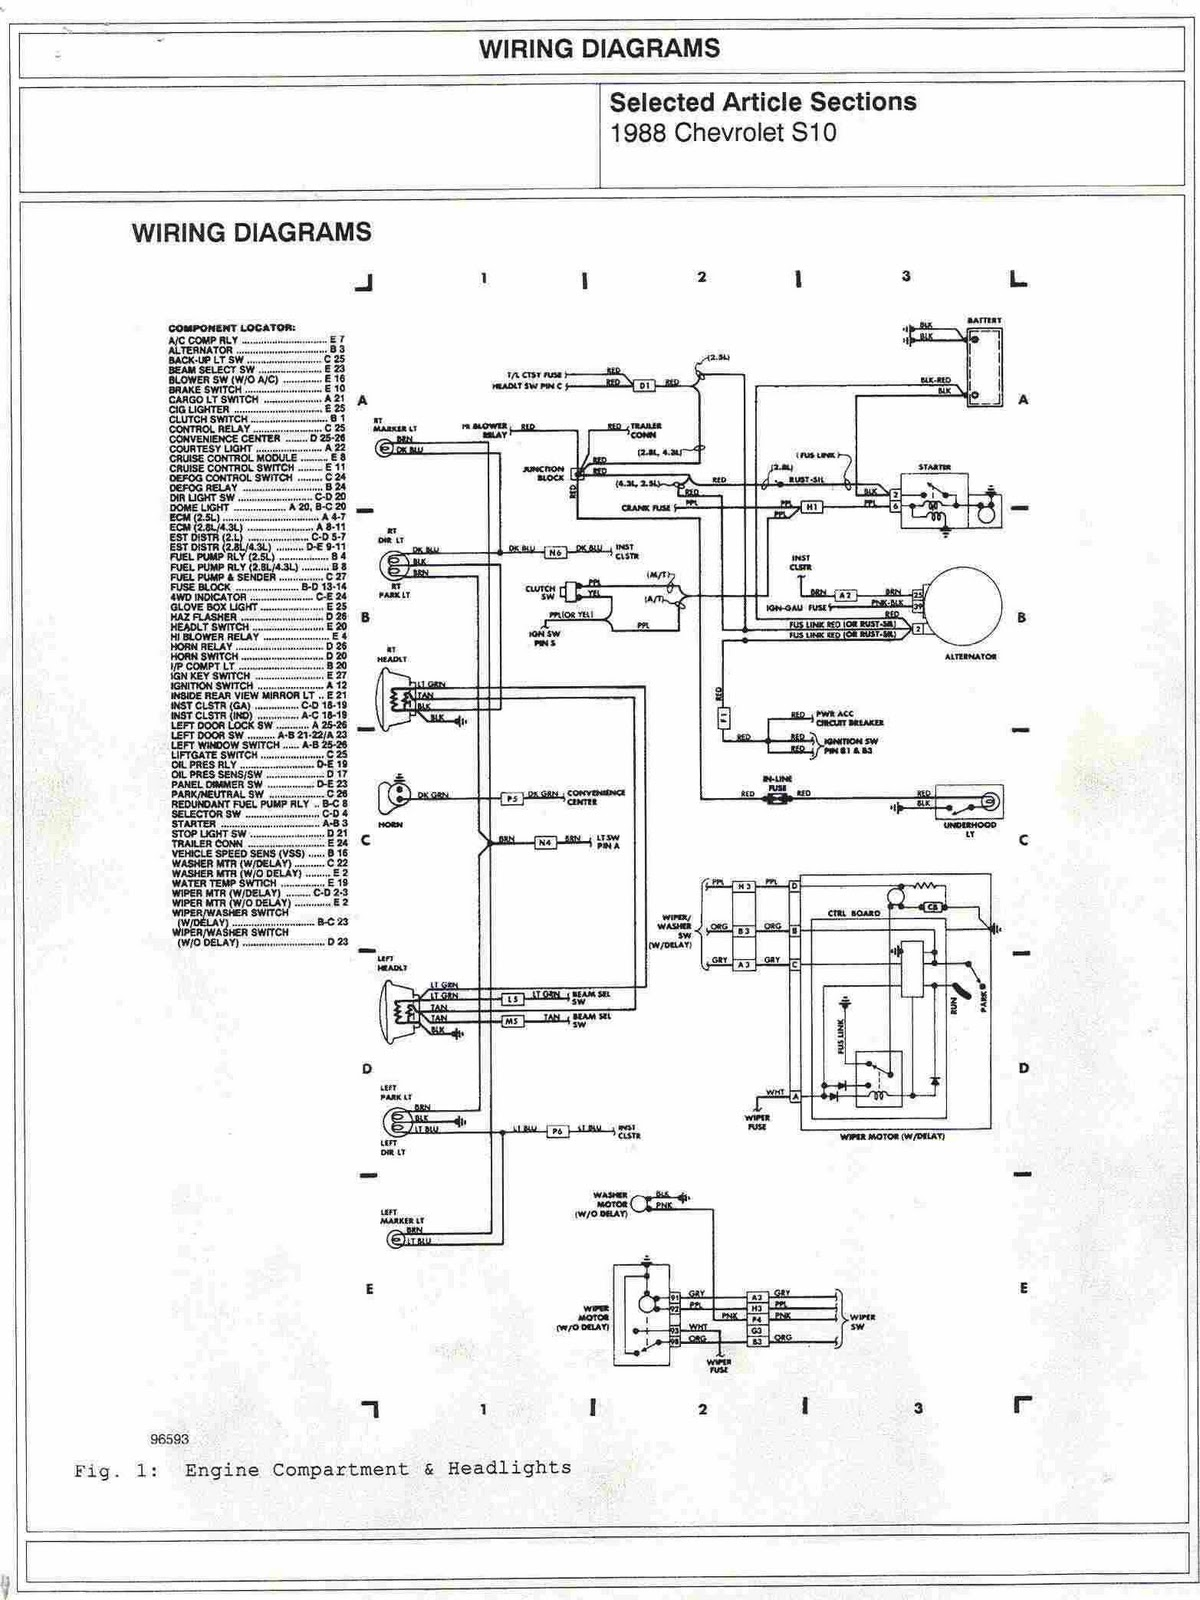 1999 s10 engine diagram s10 2 engine diagram s10 wiring diagram s10 image wiring diagram wiring diagram 1988 chevy s10